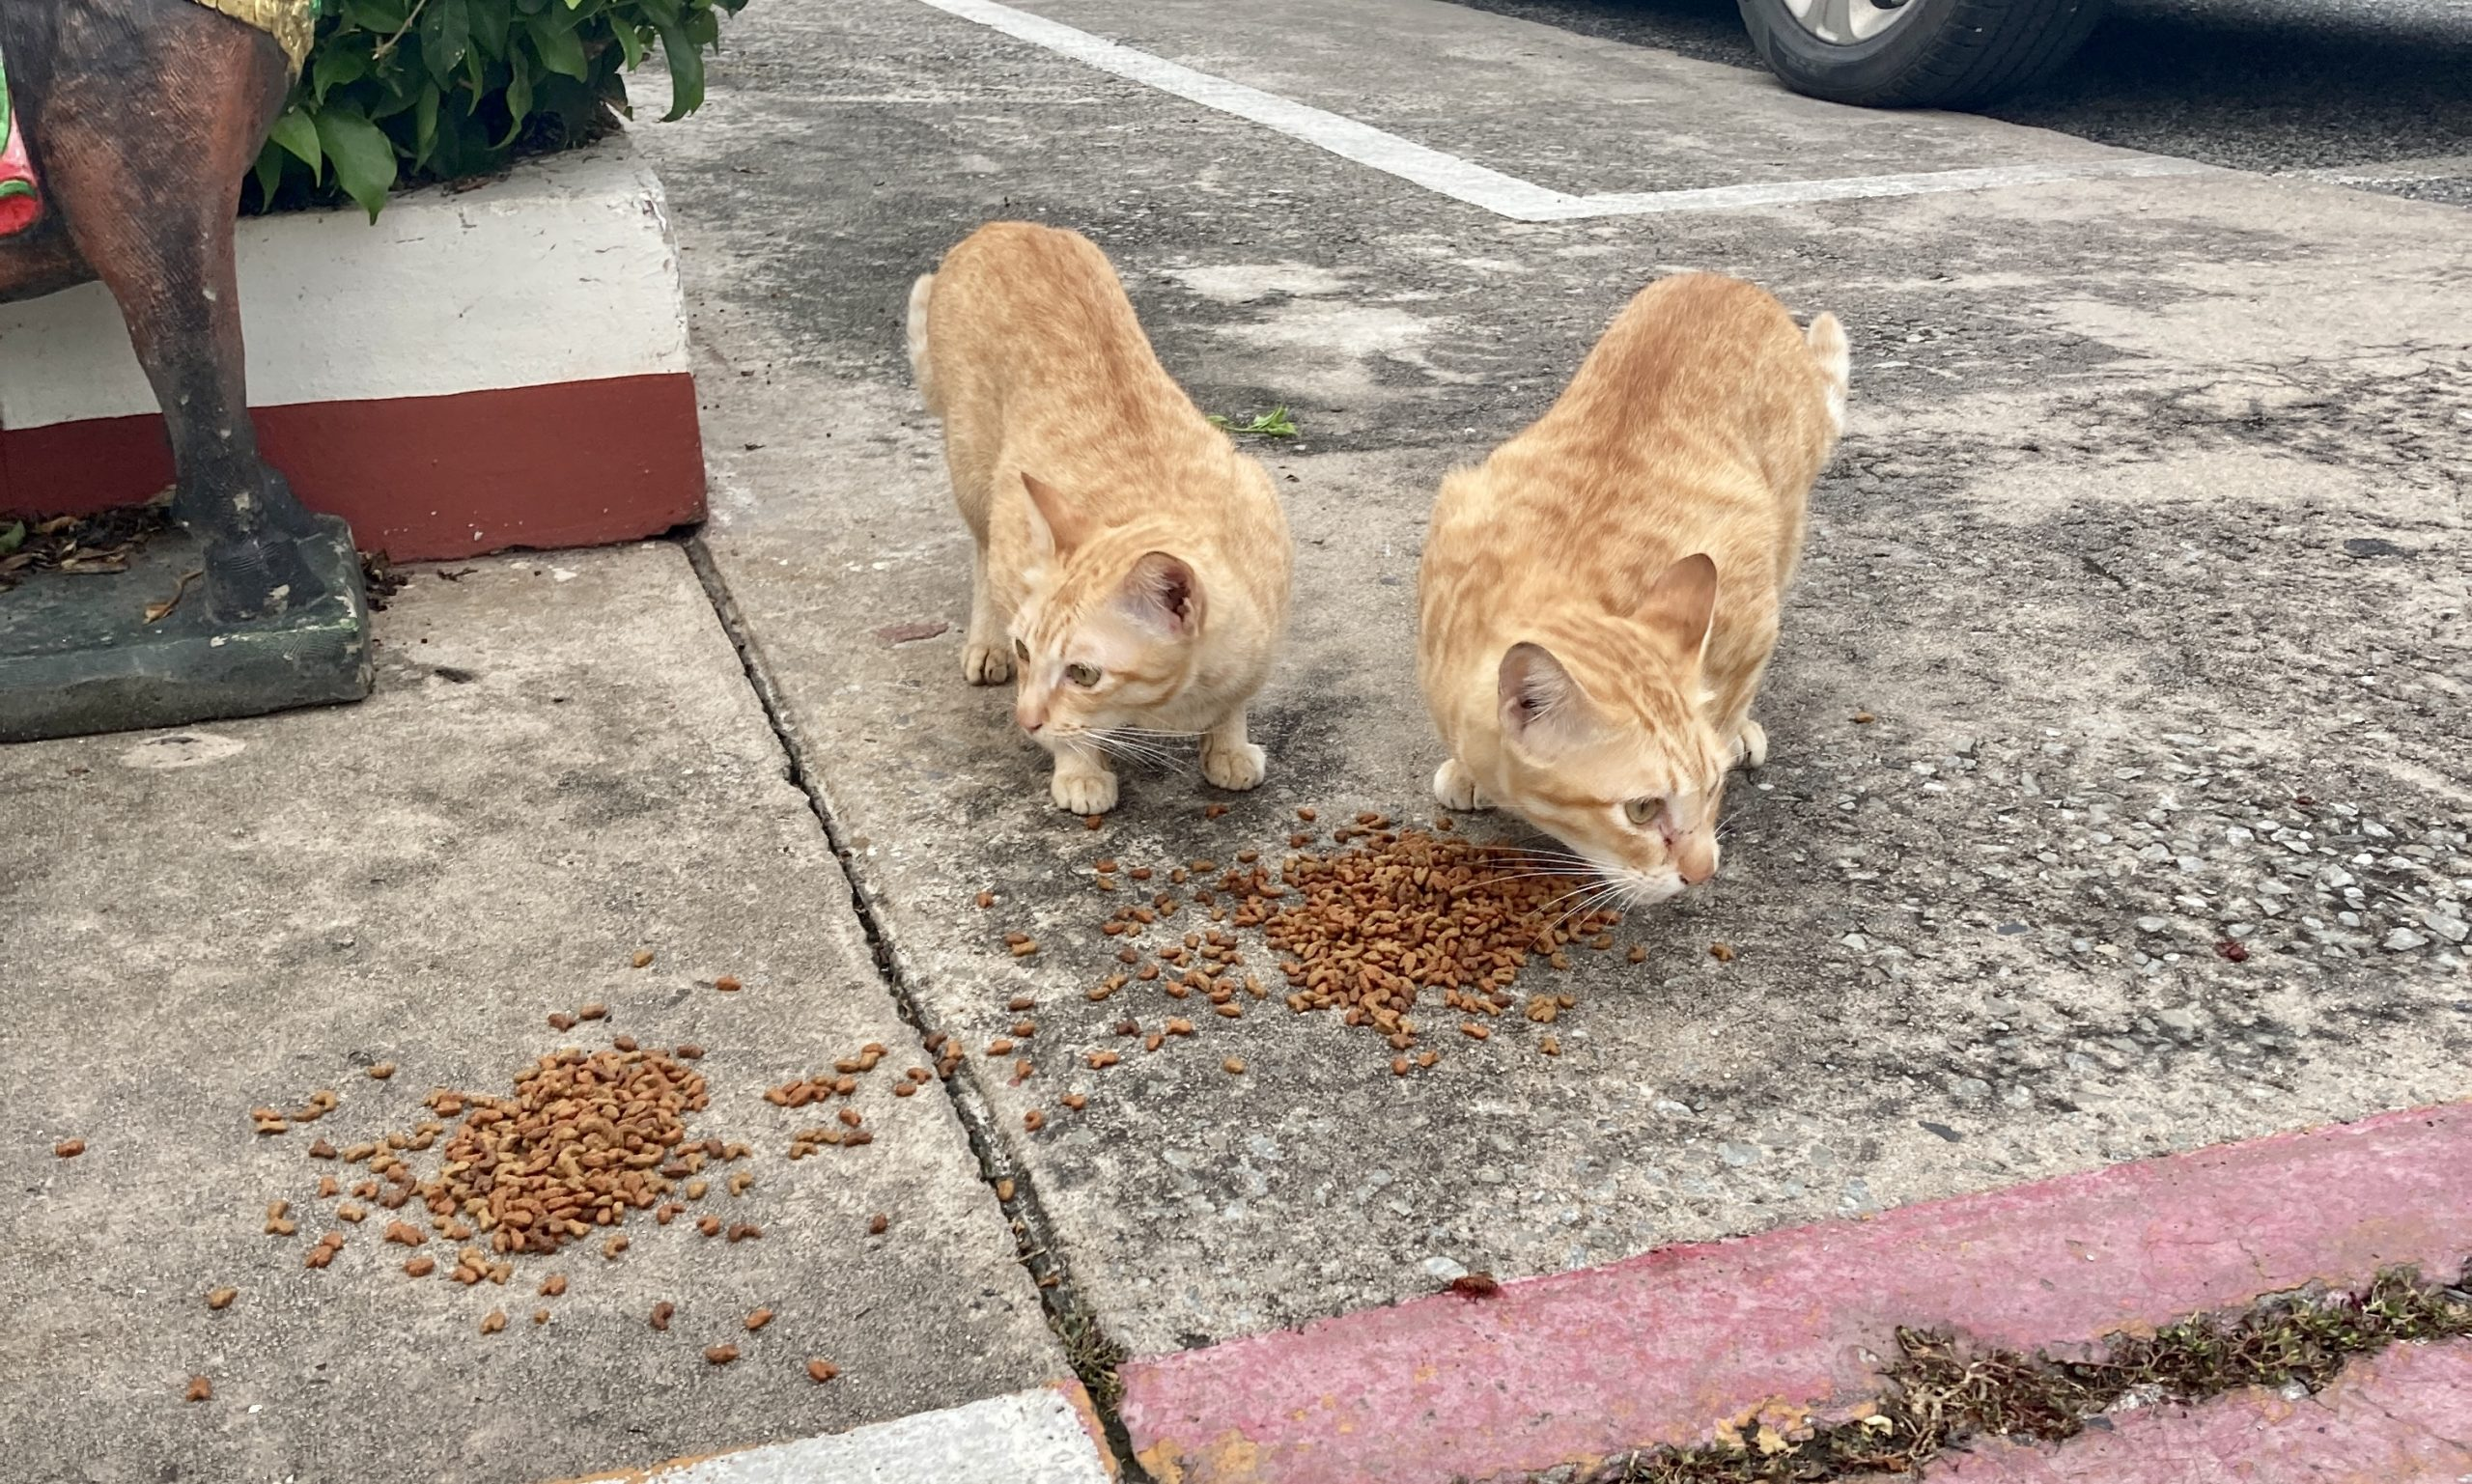 Week #1 – Over 200 Stray Cats & Dogs Got Fed